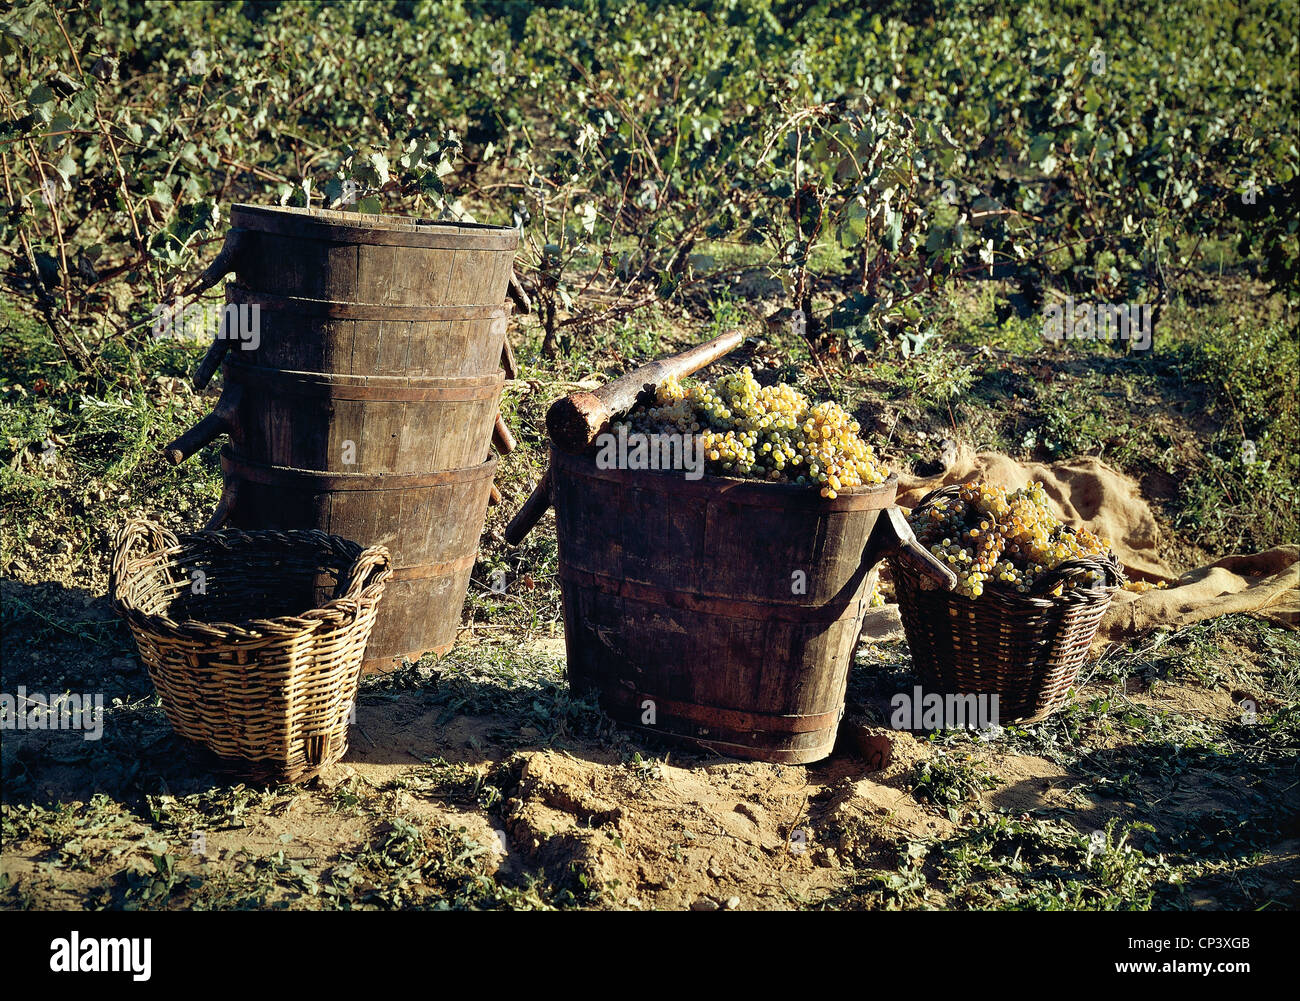 Spain - Catalonia - Artes. Vedemmia: baskets with grapes - Stock Image